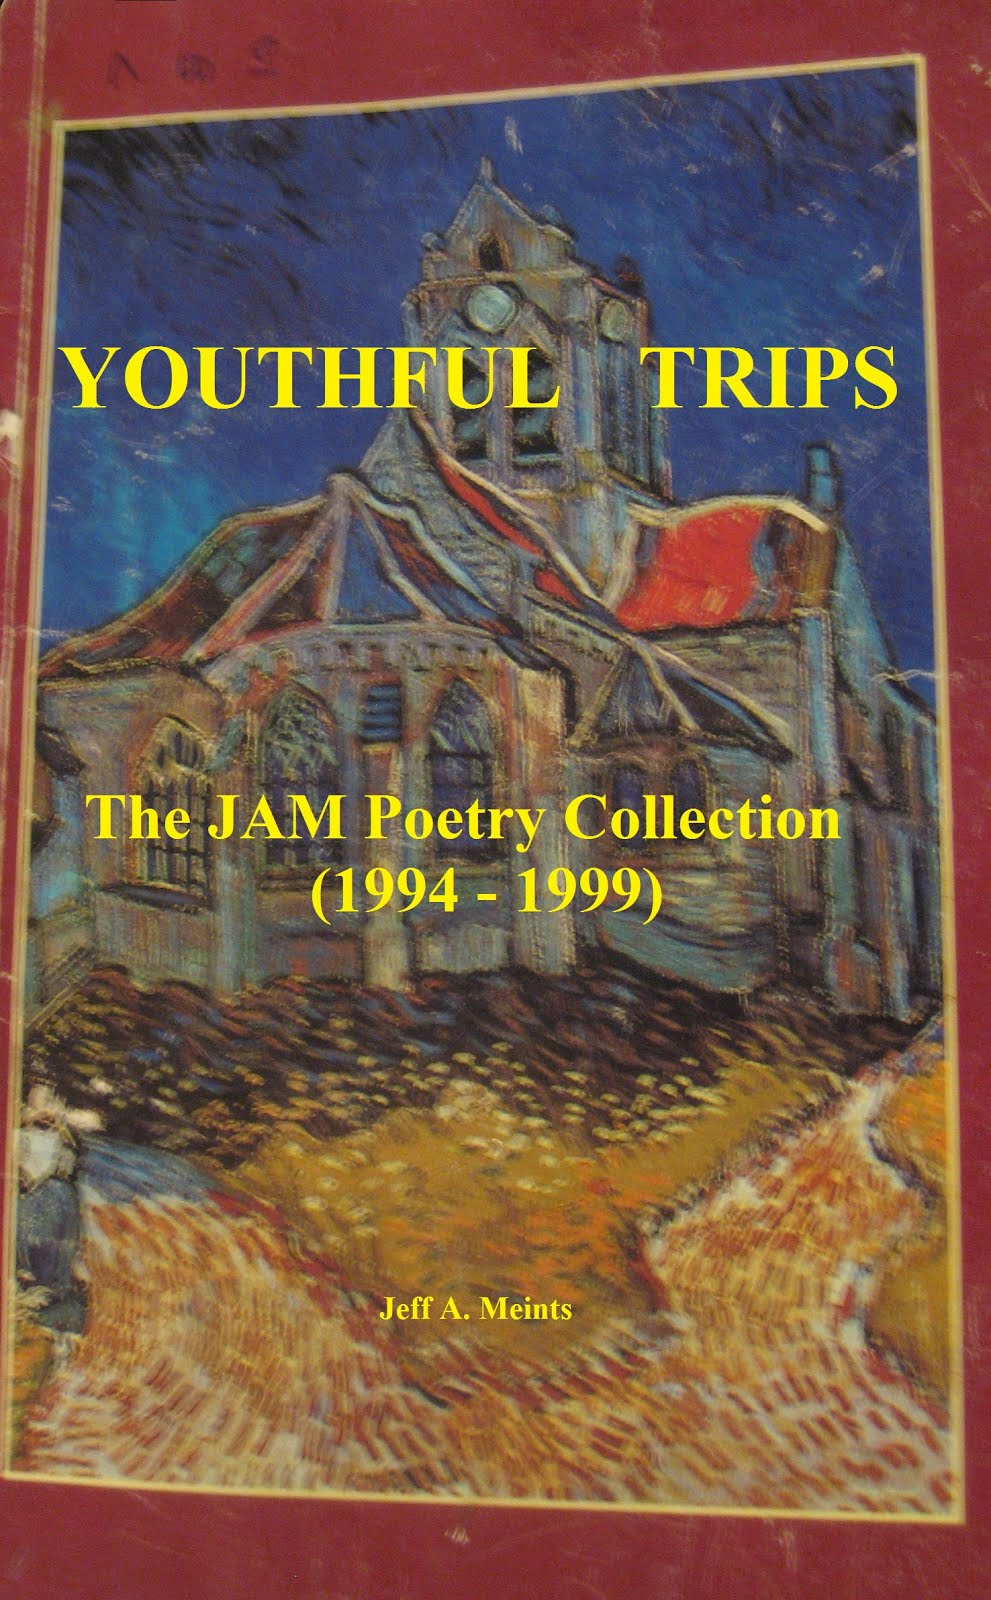 Youthful Trips - The JAM Poetry Collection (1994-1999)